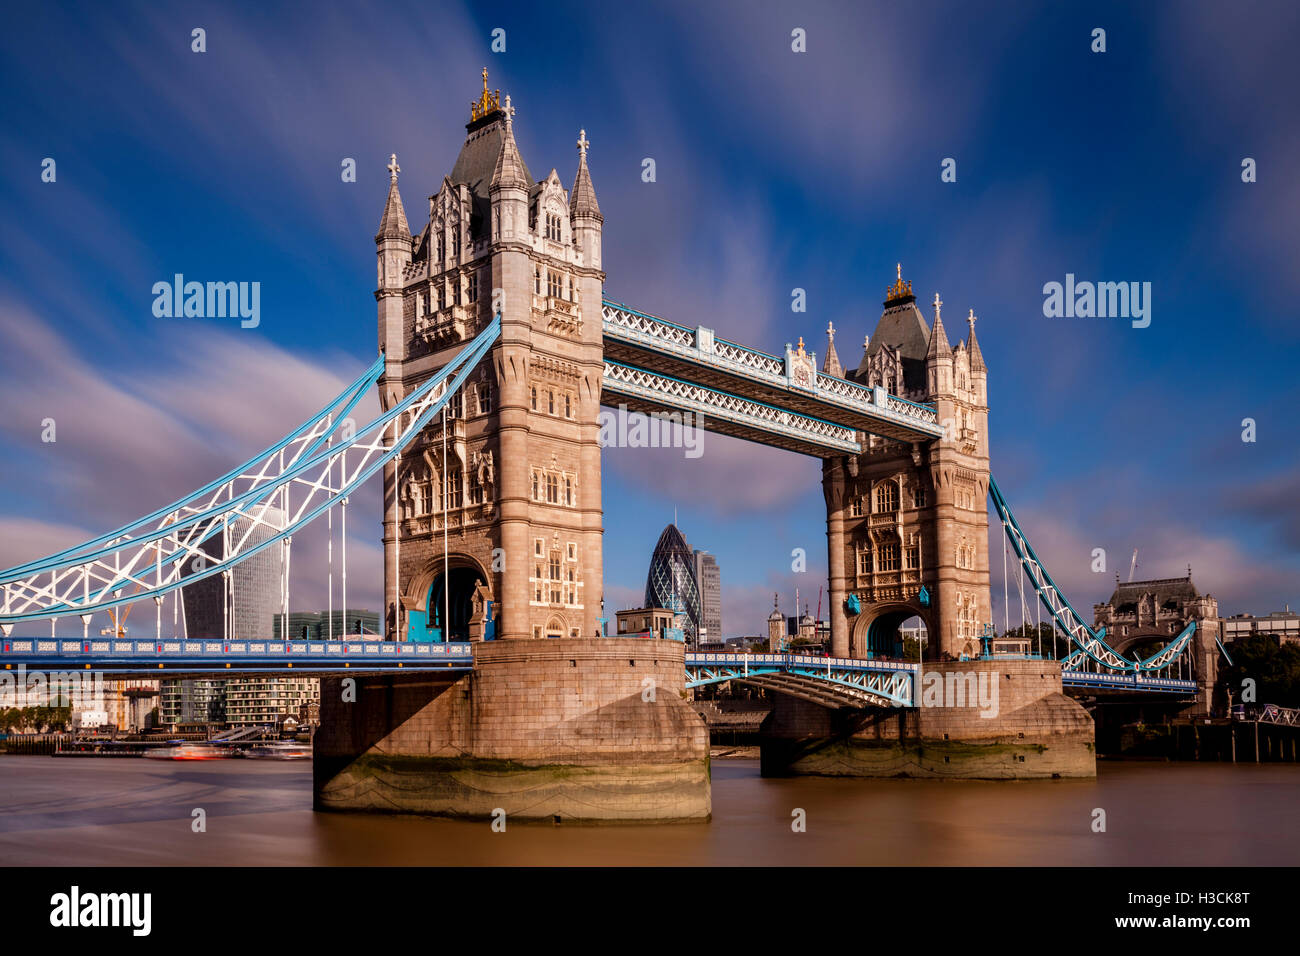 Tower Bridge and River Thames, London, England - Stock Image